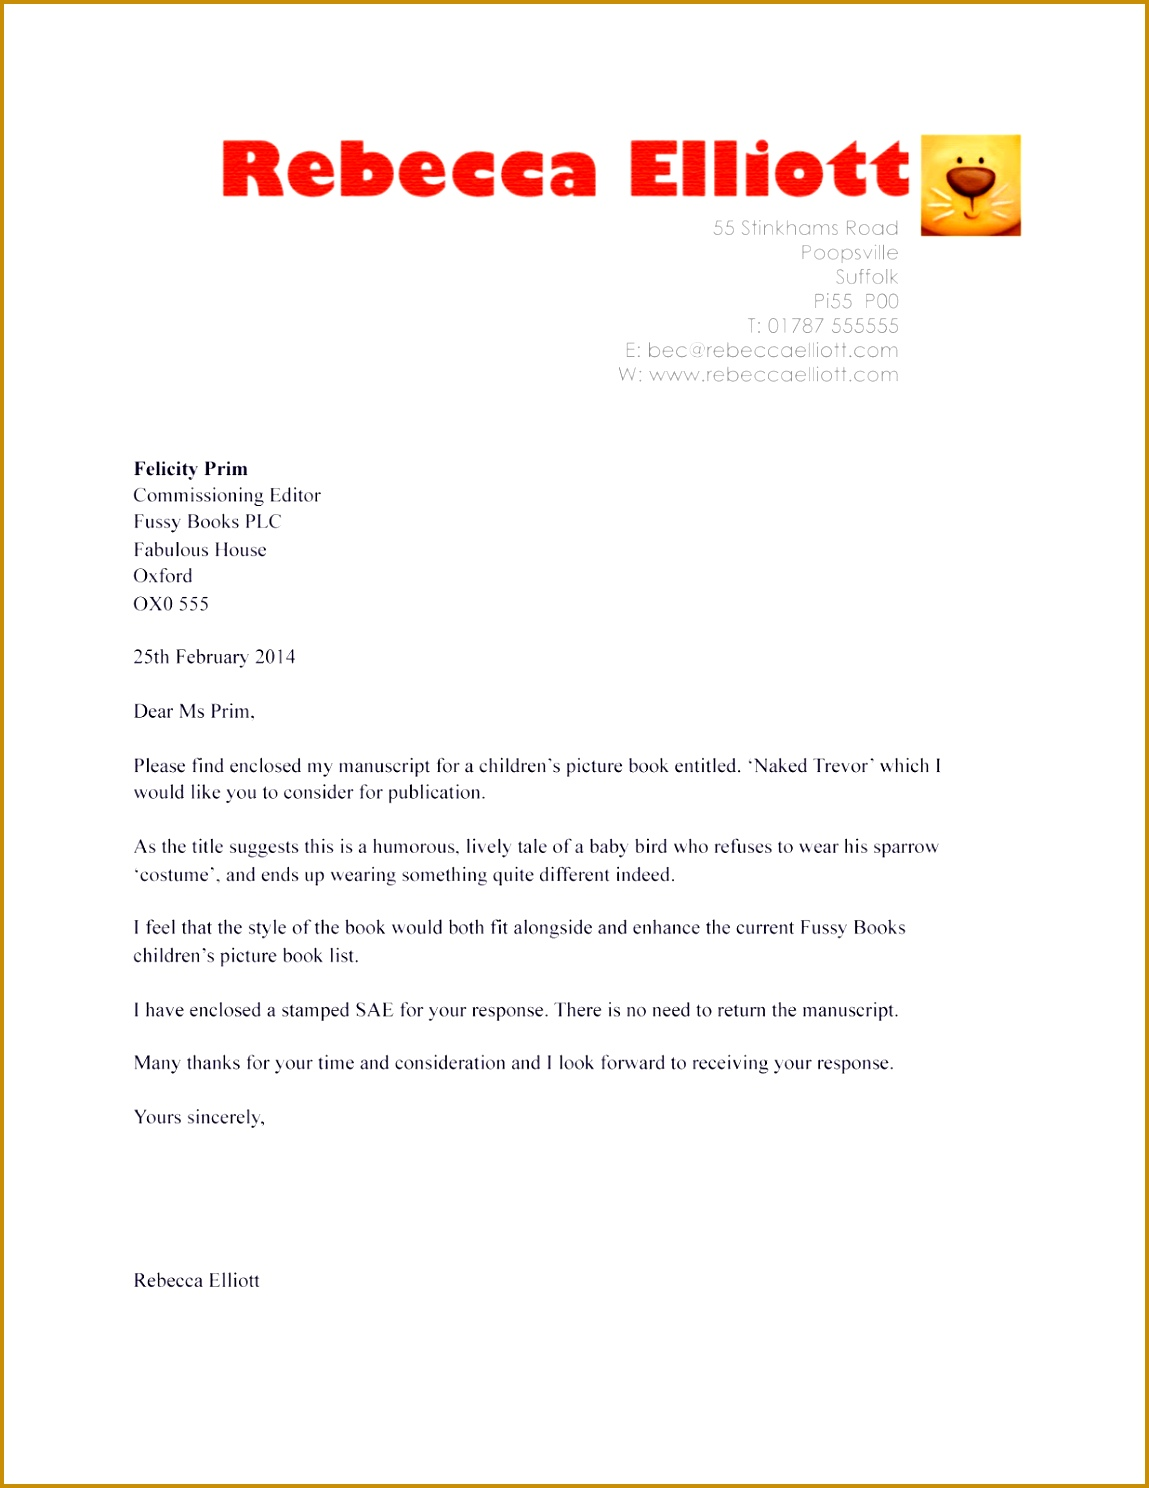 Salary Breakup Letter Format Image Construction Work Proposal Template How To Write A Breakup Lettercheap Scholarship Essay Proofreading Website Uk Essay Do 14881149